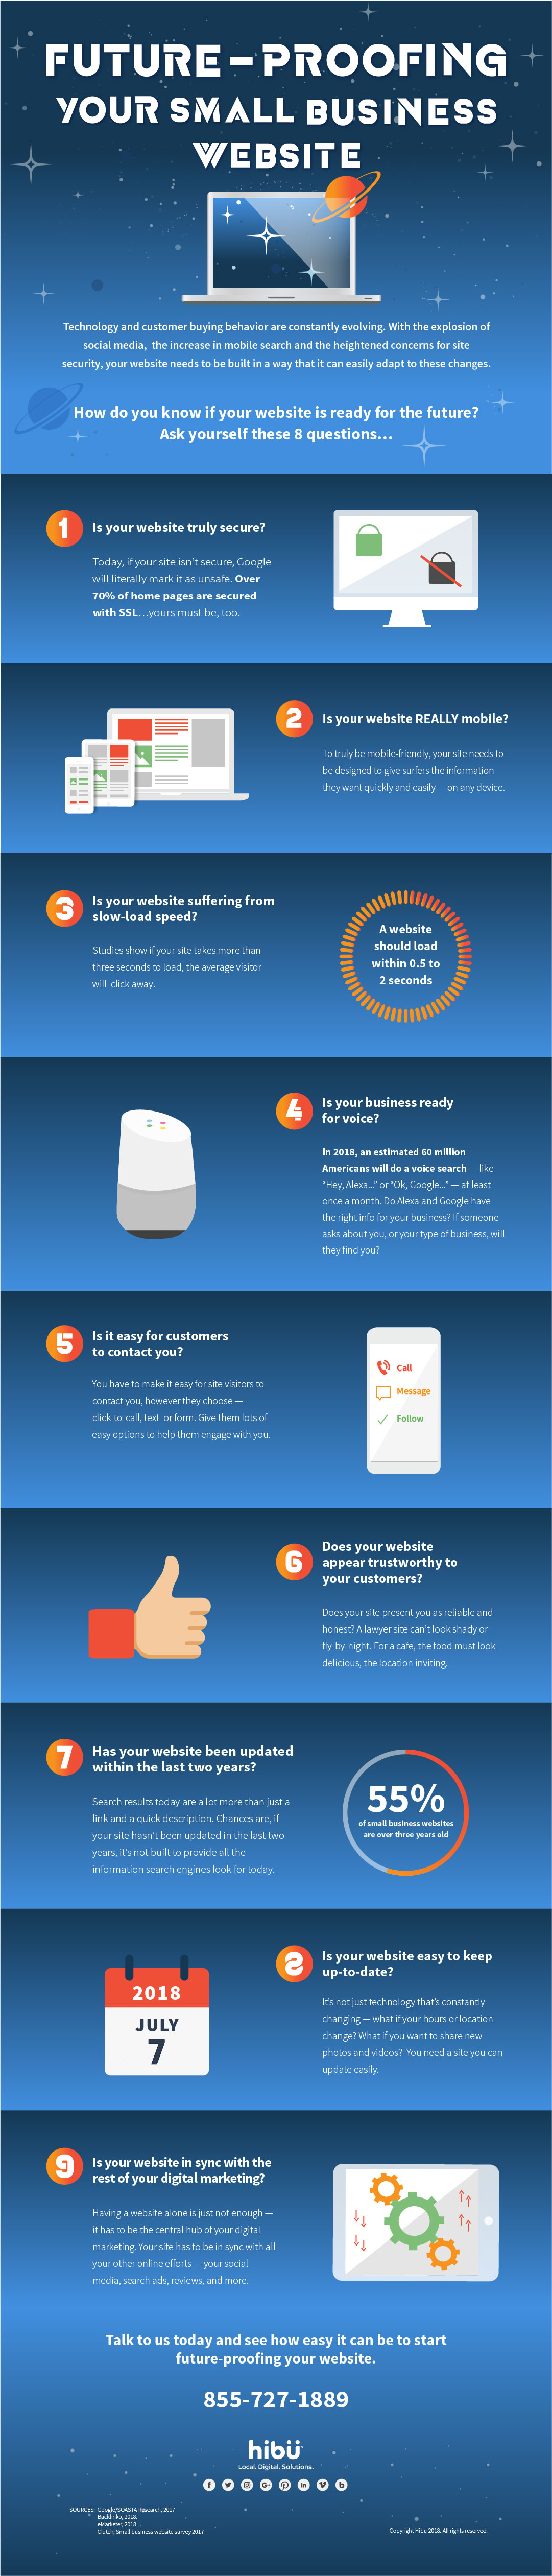 Future-proofing your small business website Infographic